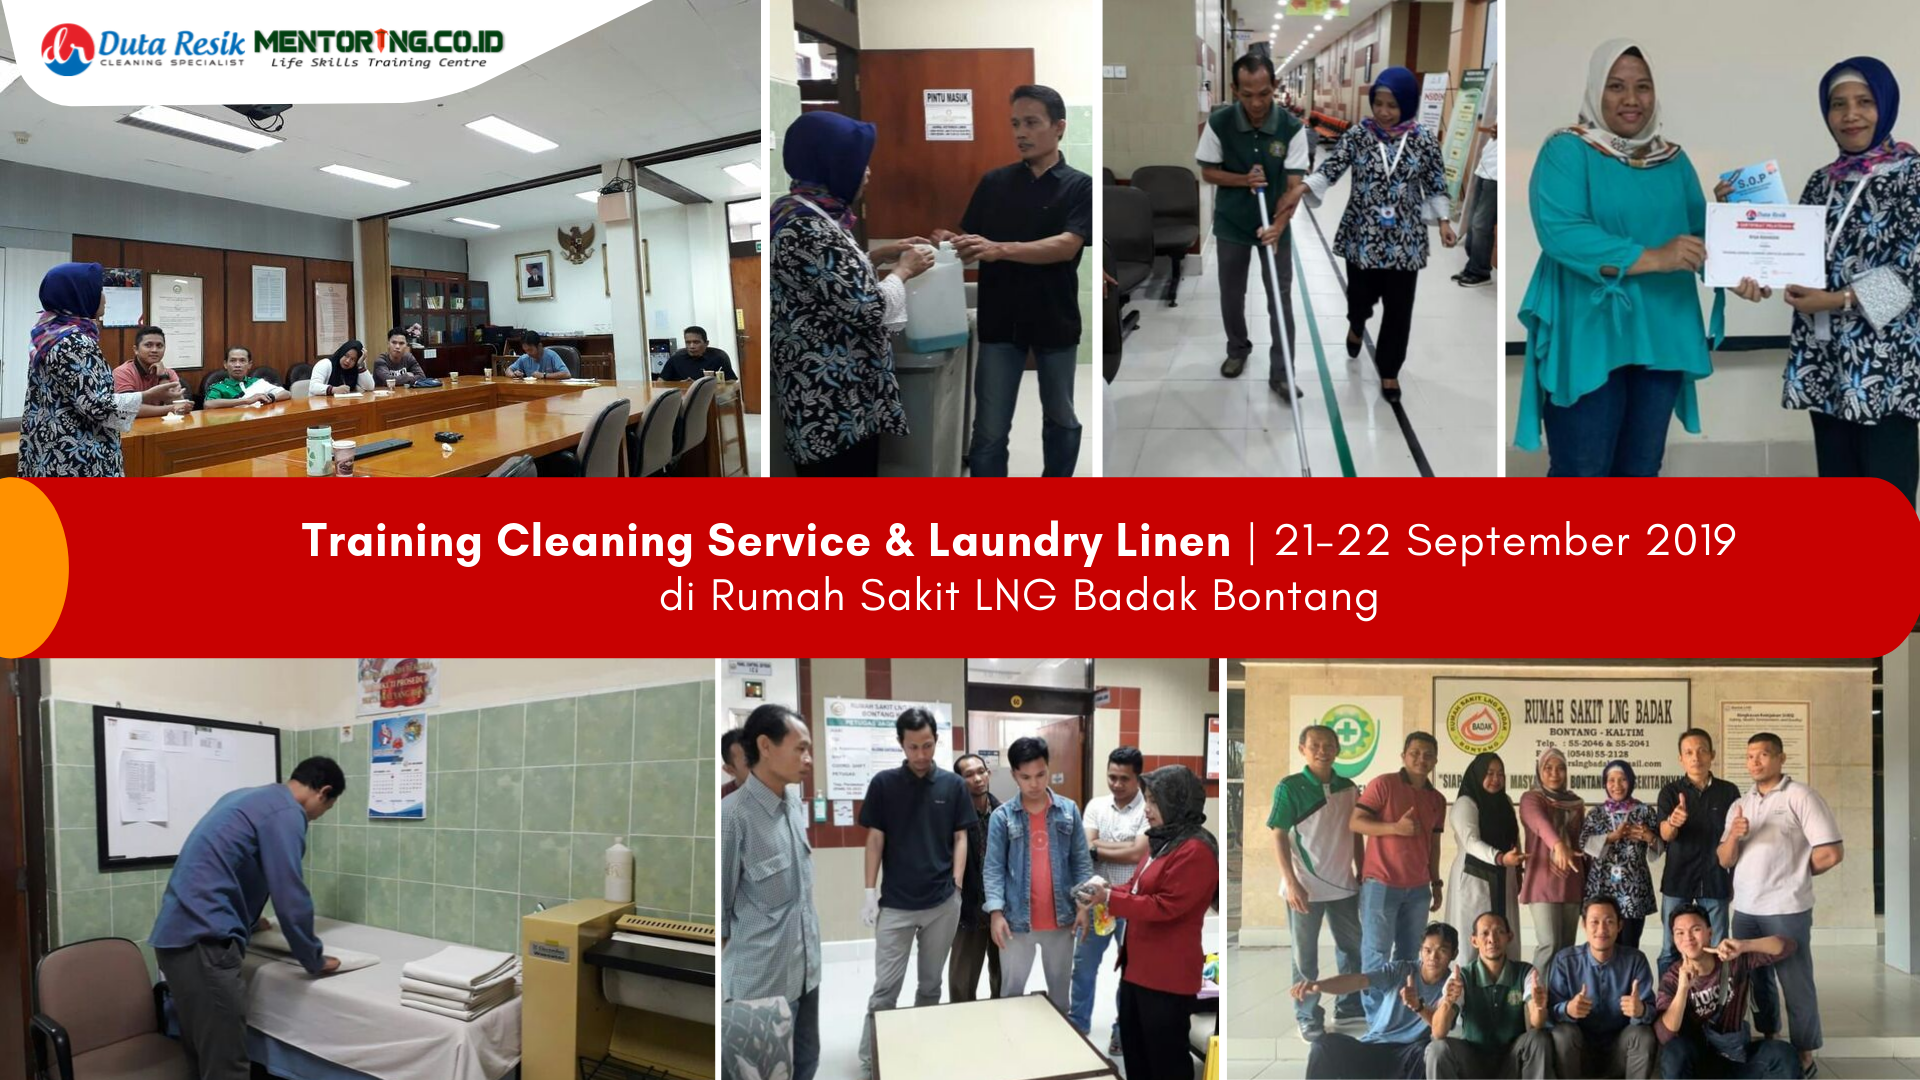 Training Cleaning & Laundry di RS LNG Badak Bontang